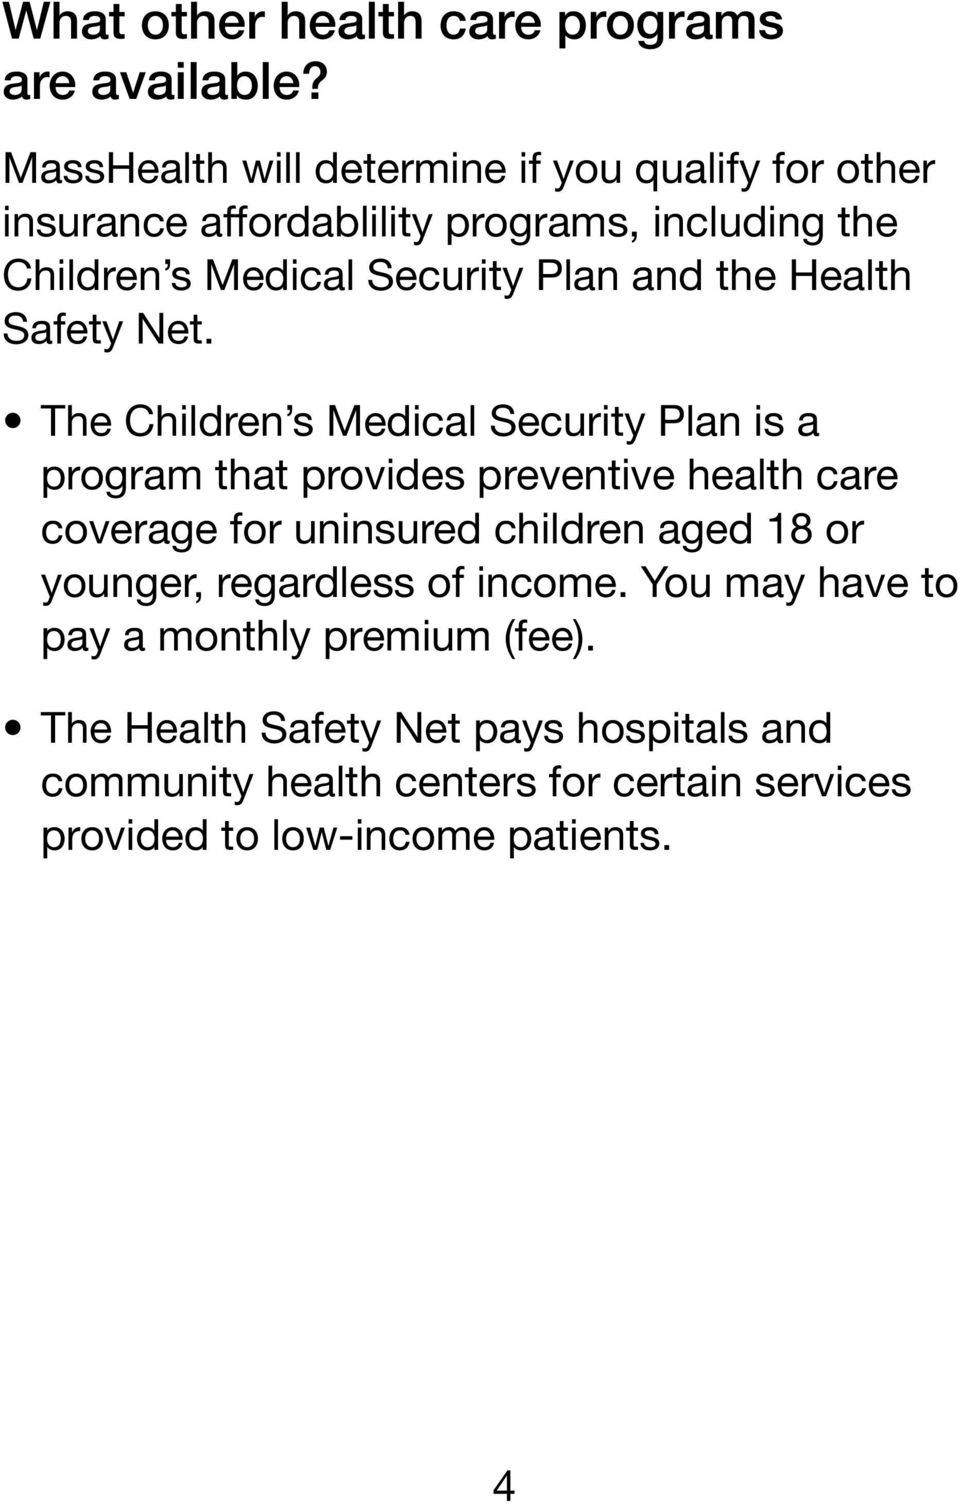 and the Health Safety Net.